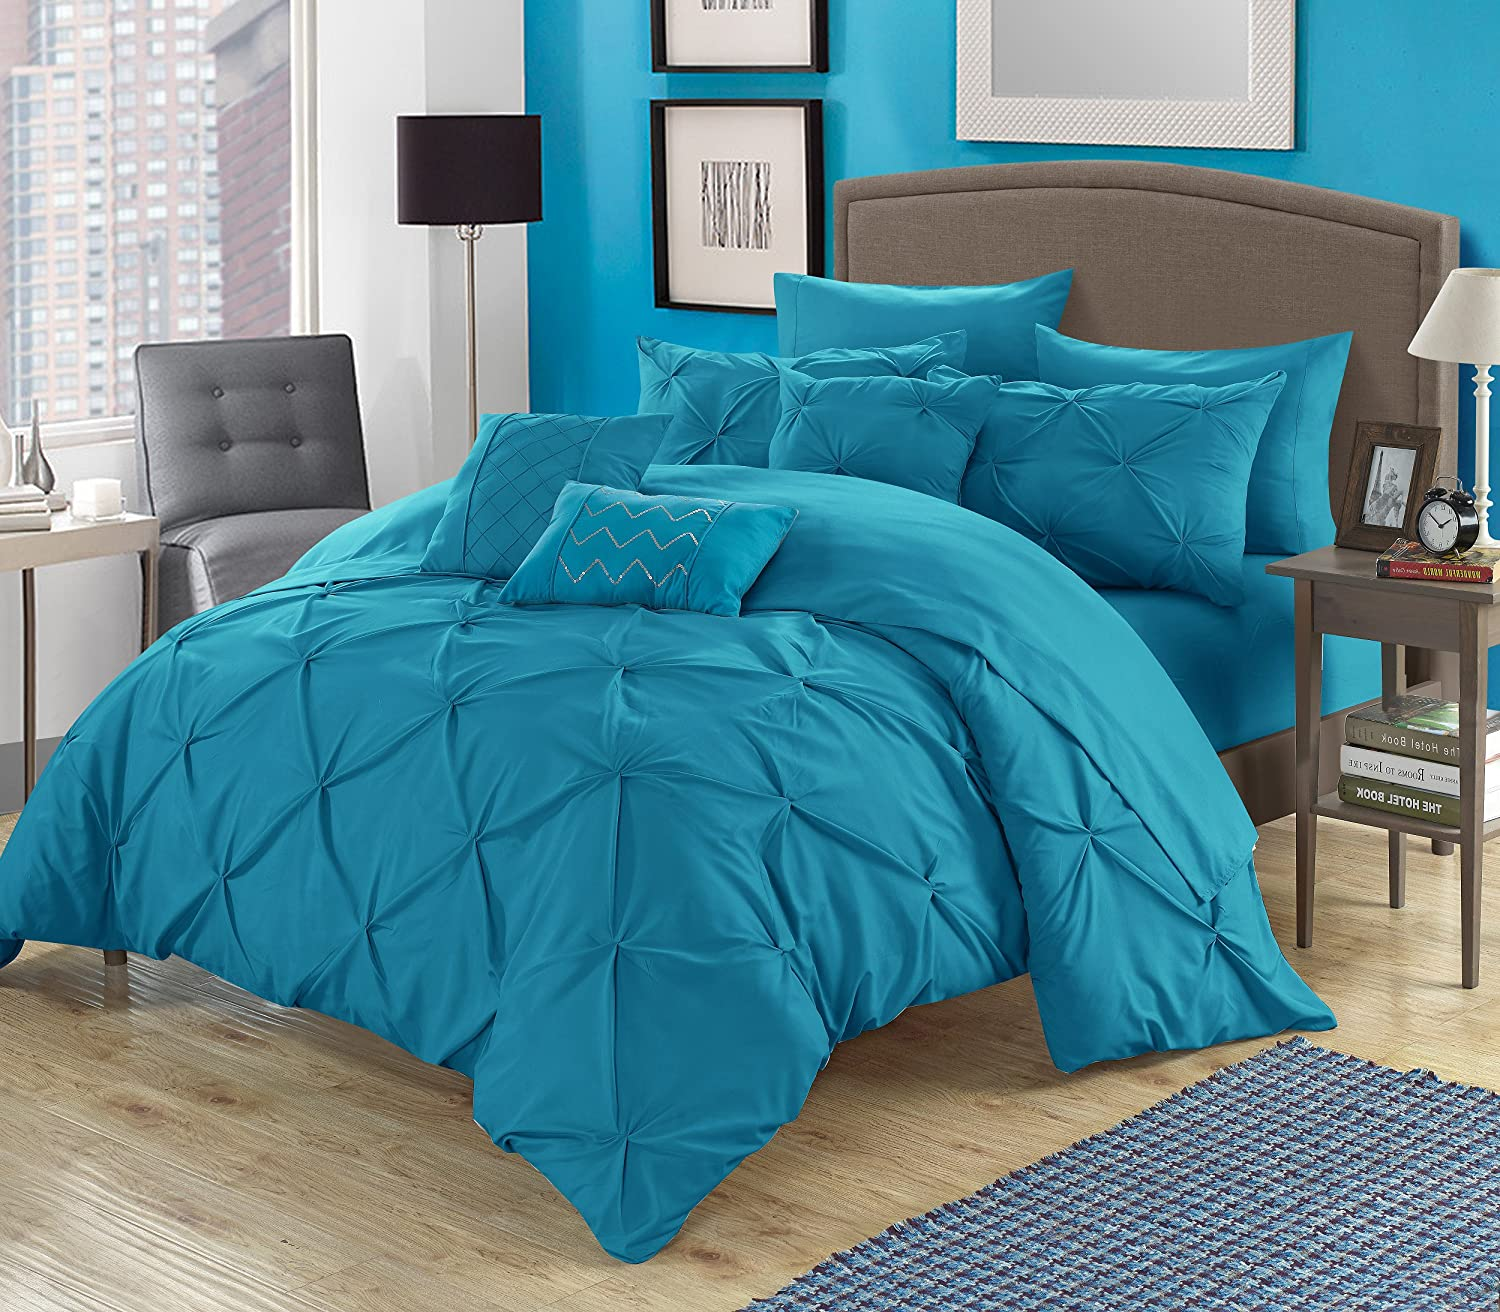 Amazon com perfect home 10 piece zita pinch pleated ruffled and pleated complete queen bed in a bag comforter set turquoise home kitchen